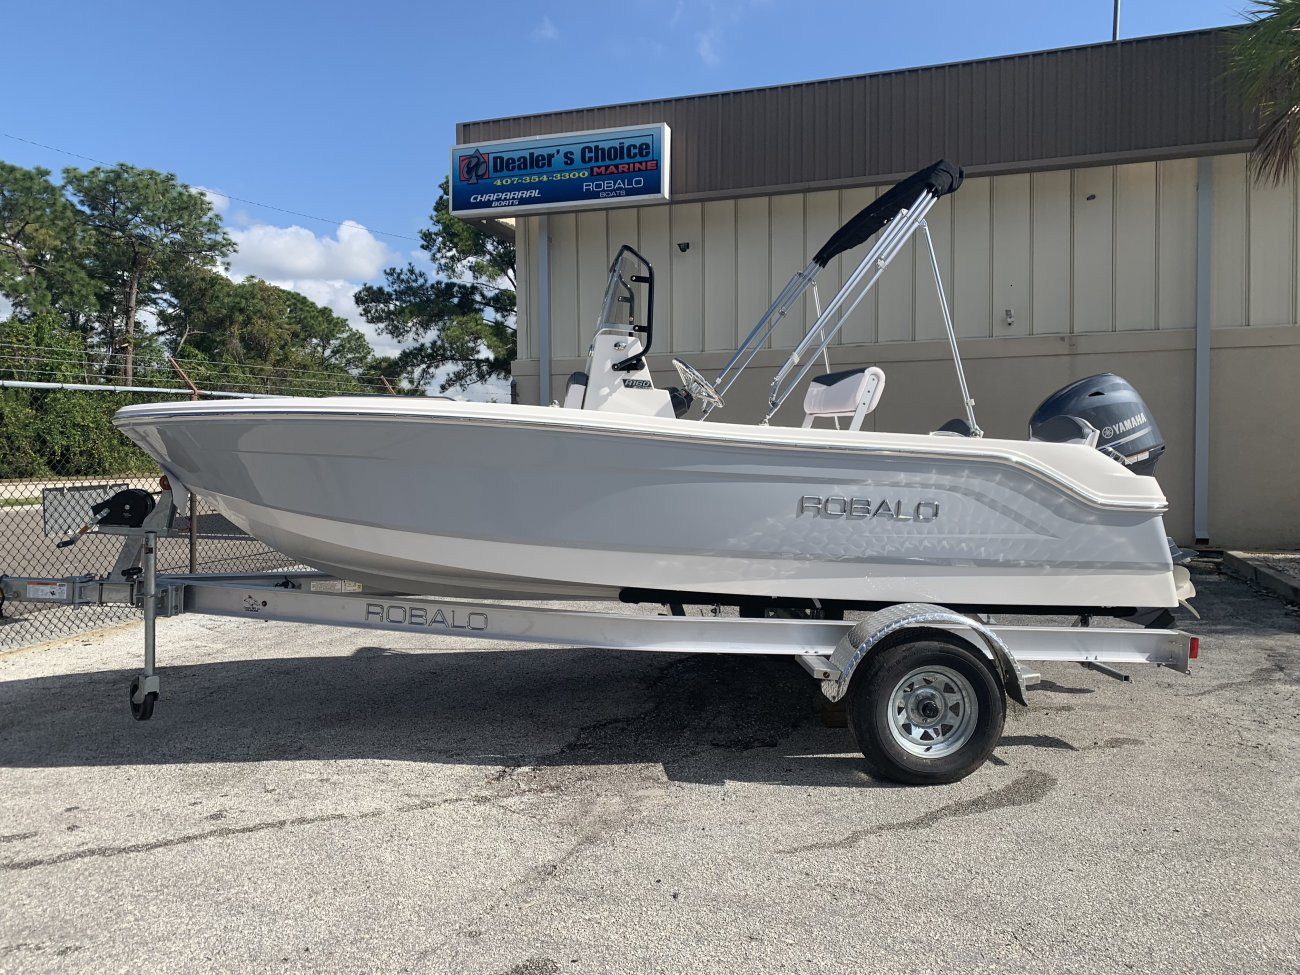 A 160 Center Console is a Power and could be classed as a Bay Boat, Center Console, Flats Boat, Freshwater Fishing, High Performance, Saltwater Fishing, Runabout,  or, just an overall Great Boat!